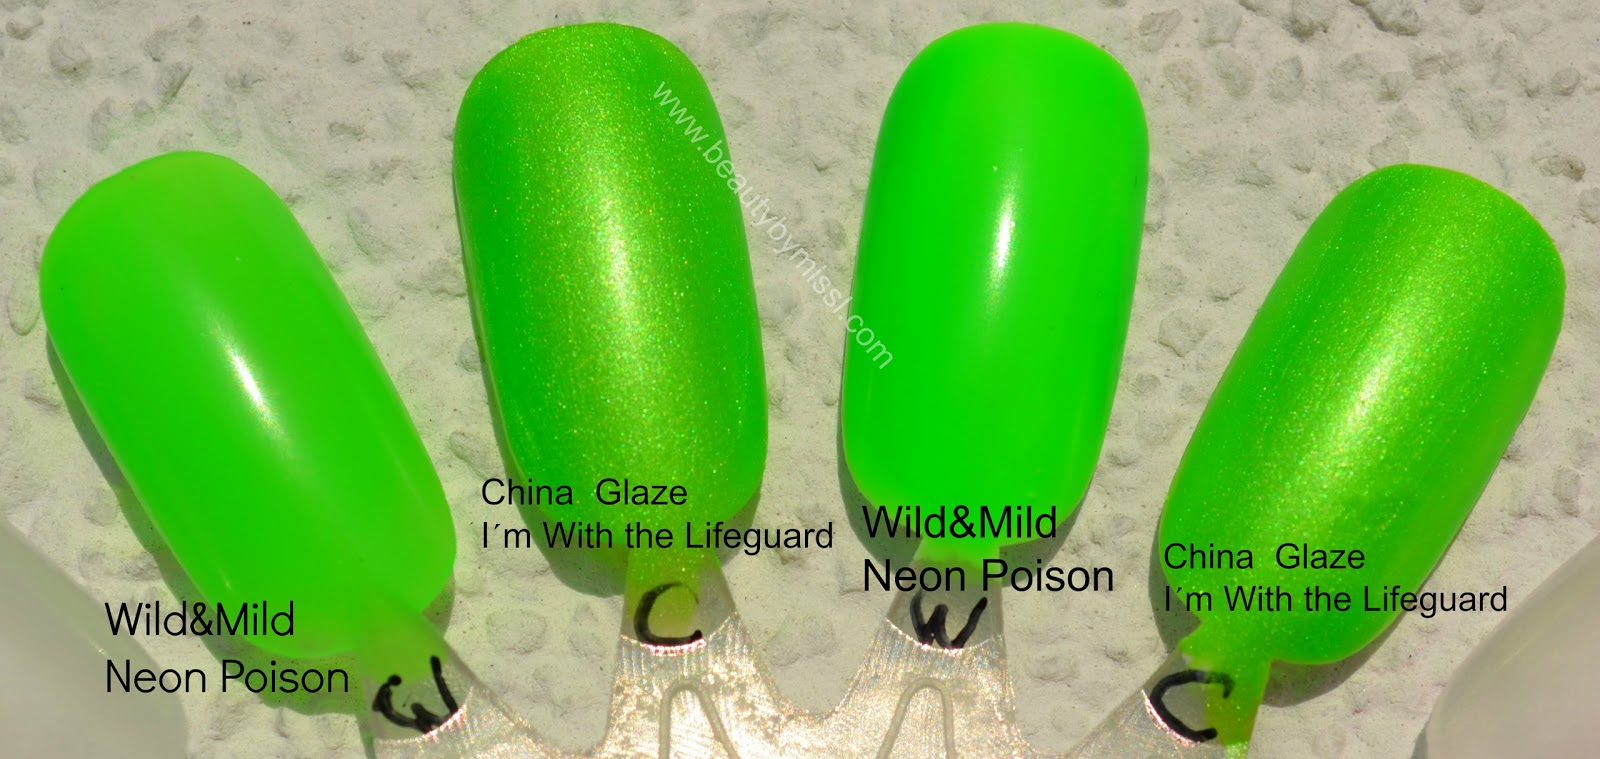 wild&mild neon  poison, China Glaze I´m with the Lifeguard